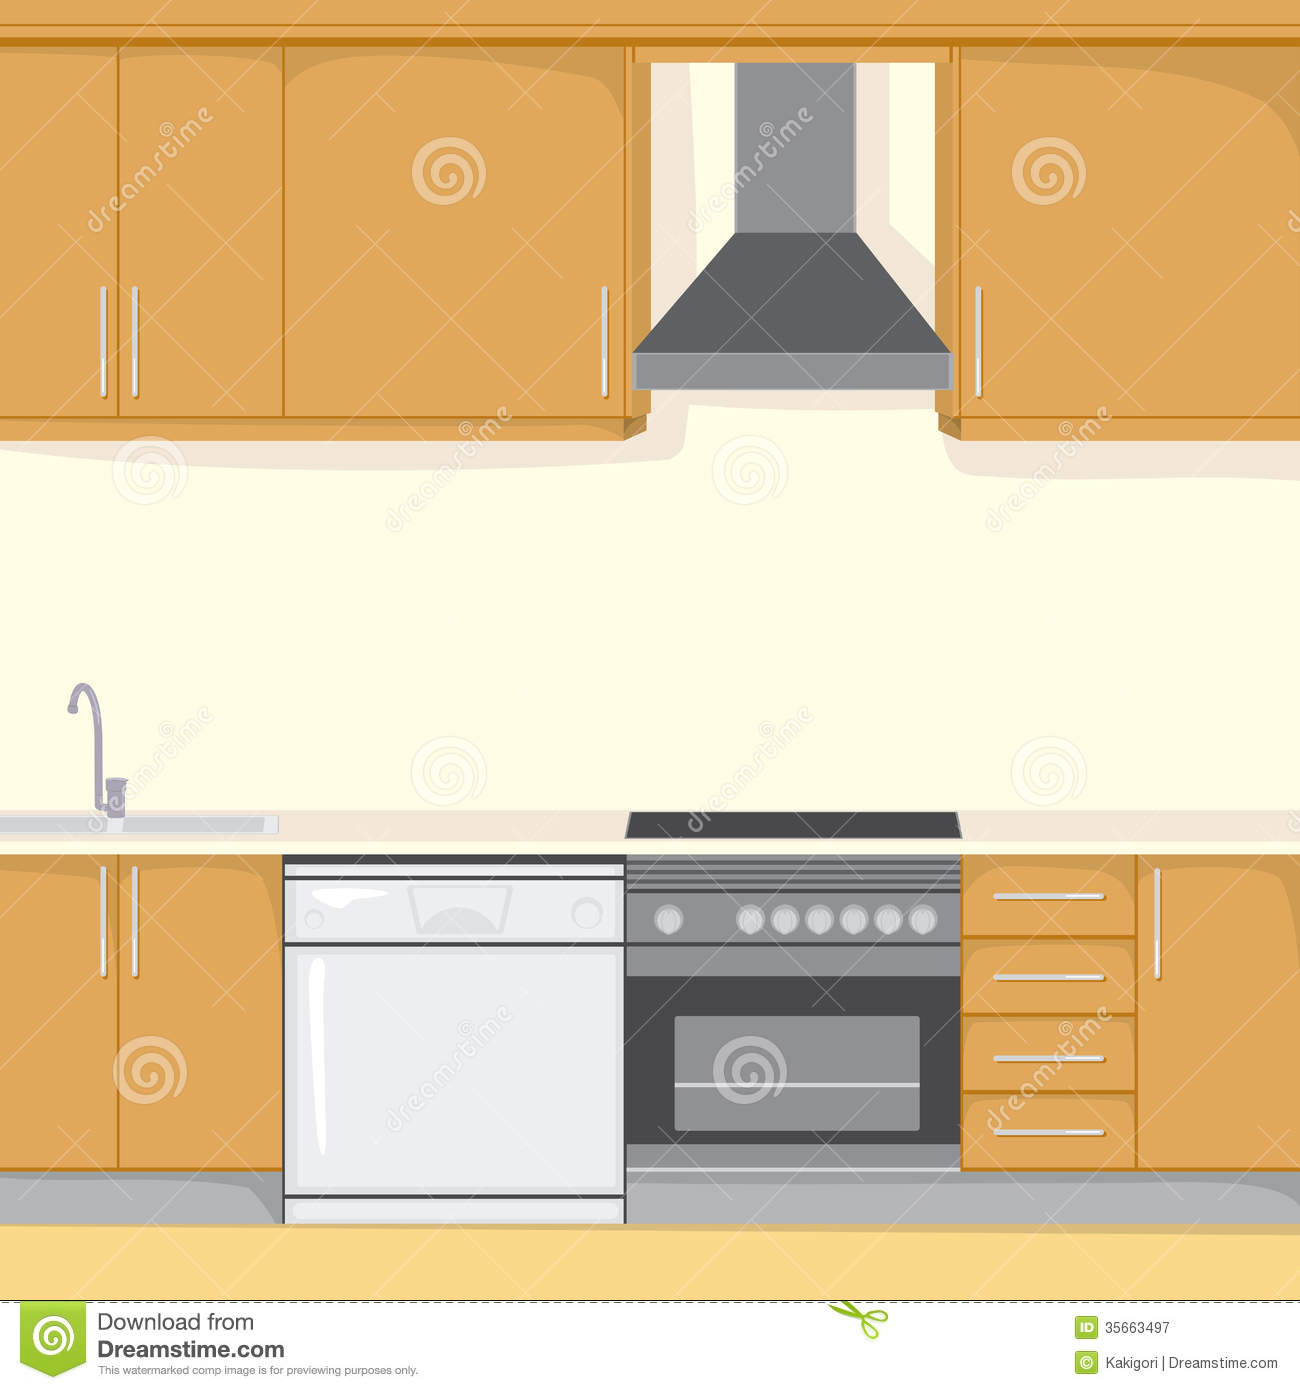 Kitchen Background Stock Vector. Illustration Of Cookware